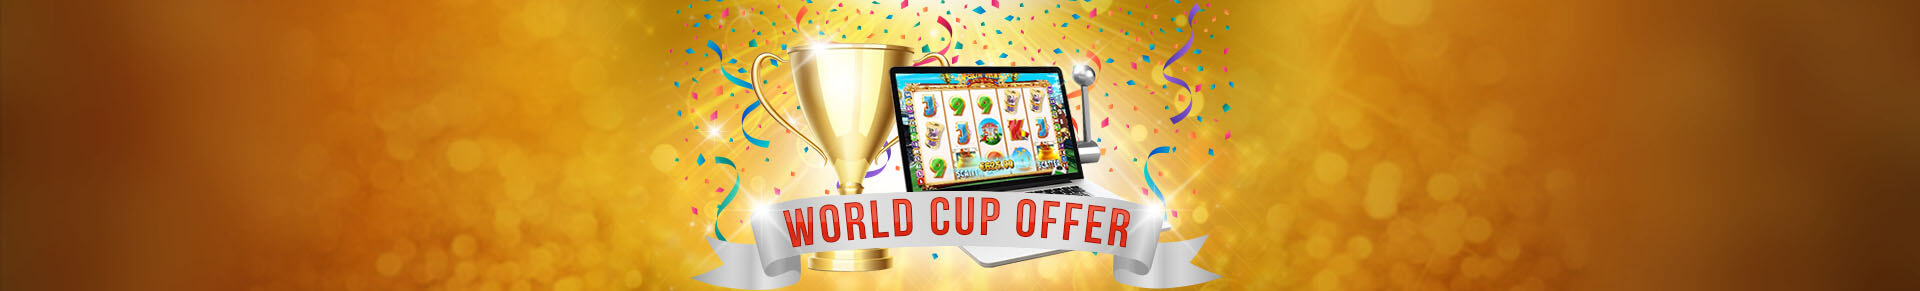 World Cup Offer